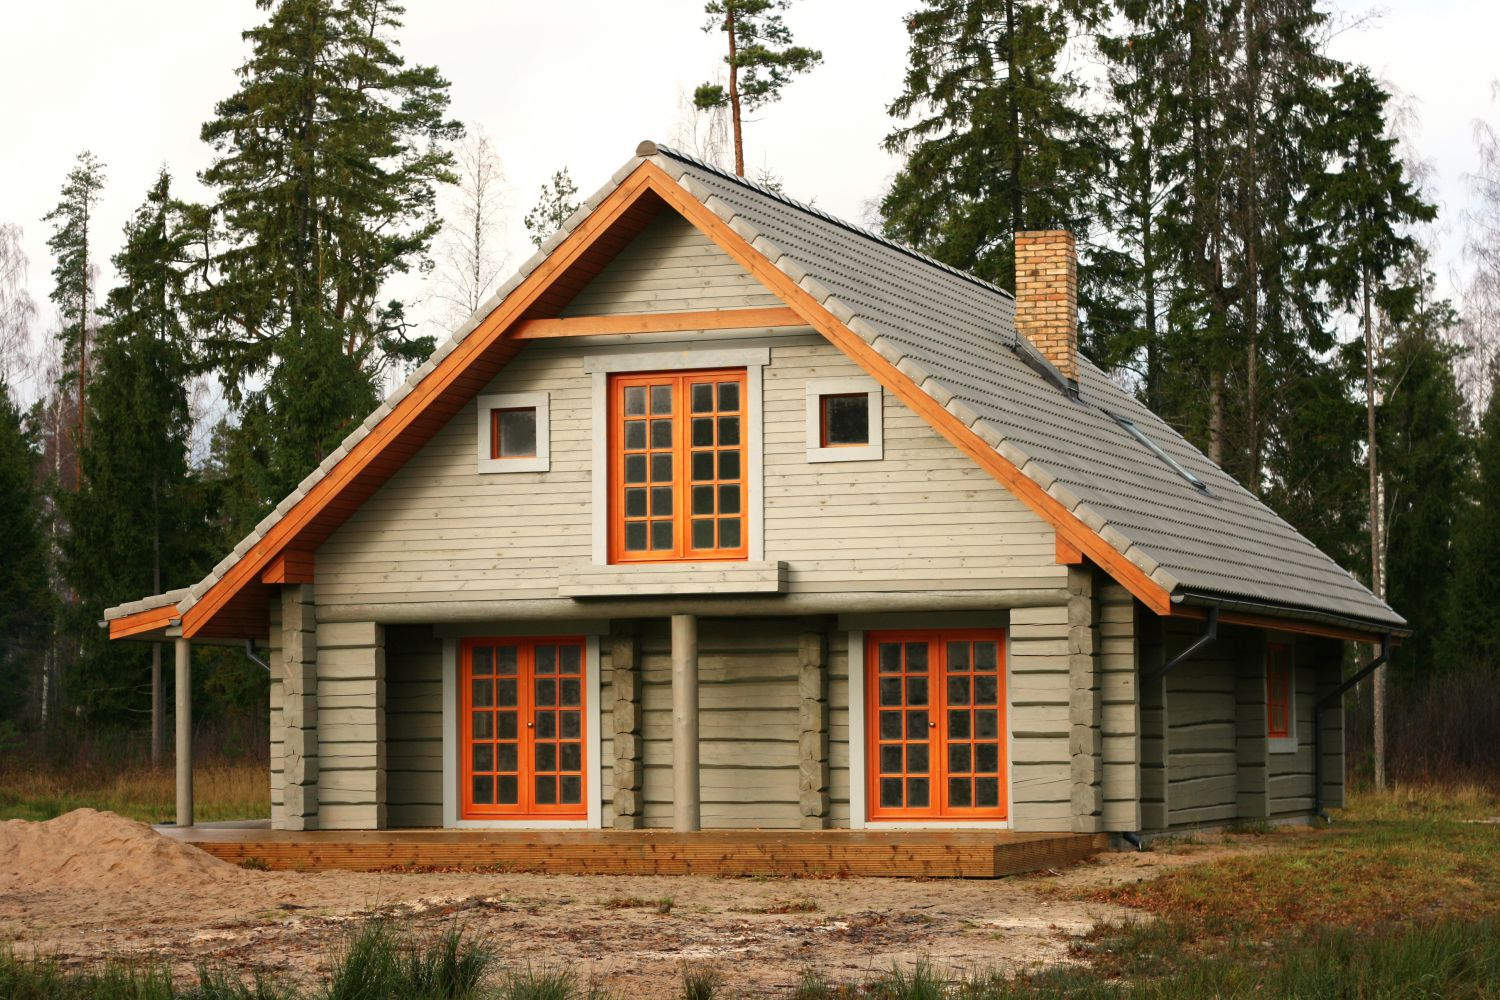 Home designed by experienced architect in Ketchikan, AK